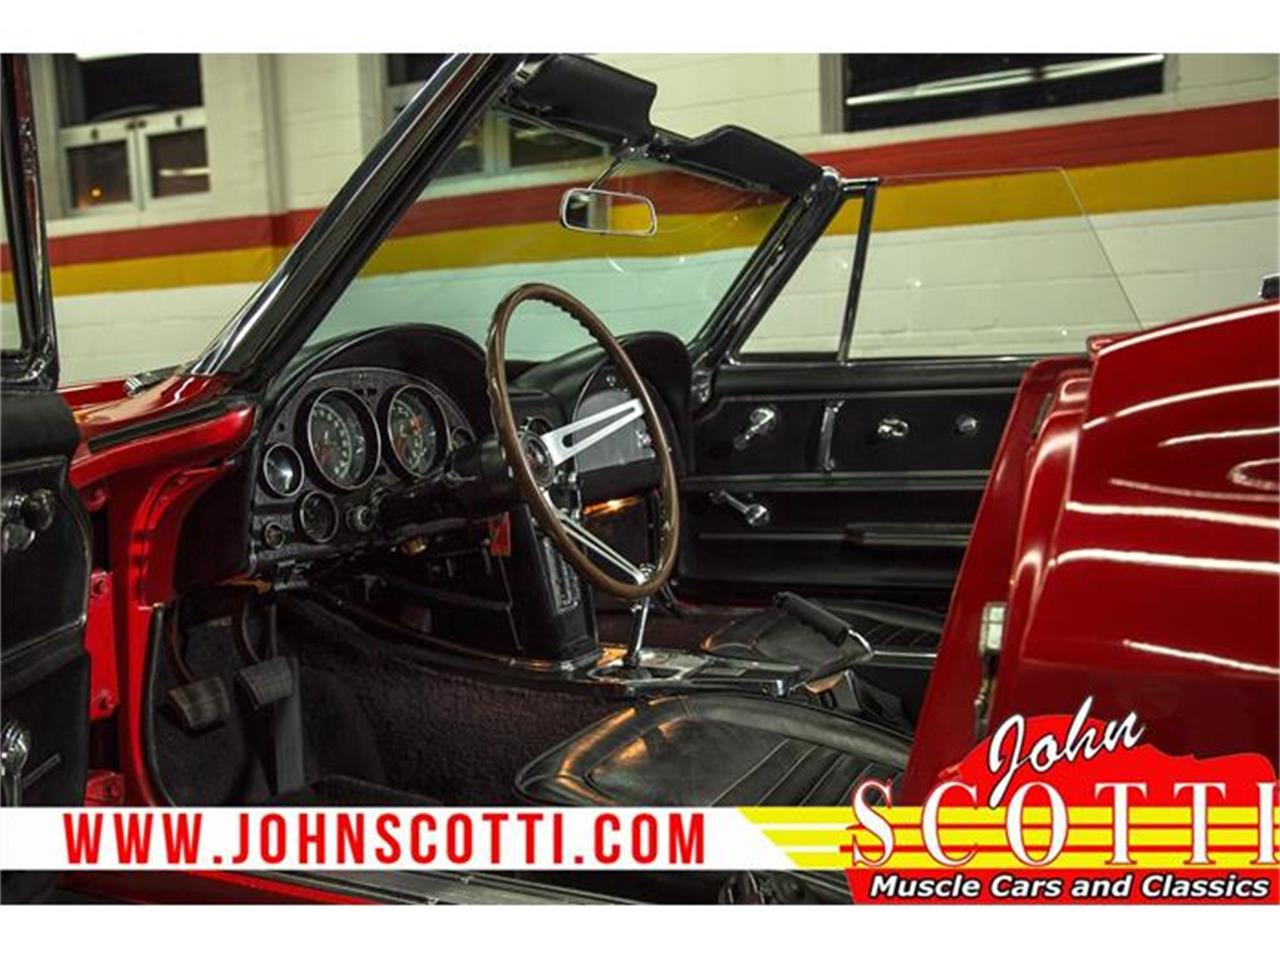 Large Picture of Classic '67 Corvette - $59,990.00 Offered by John Scotti Classic Cars - GA0F